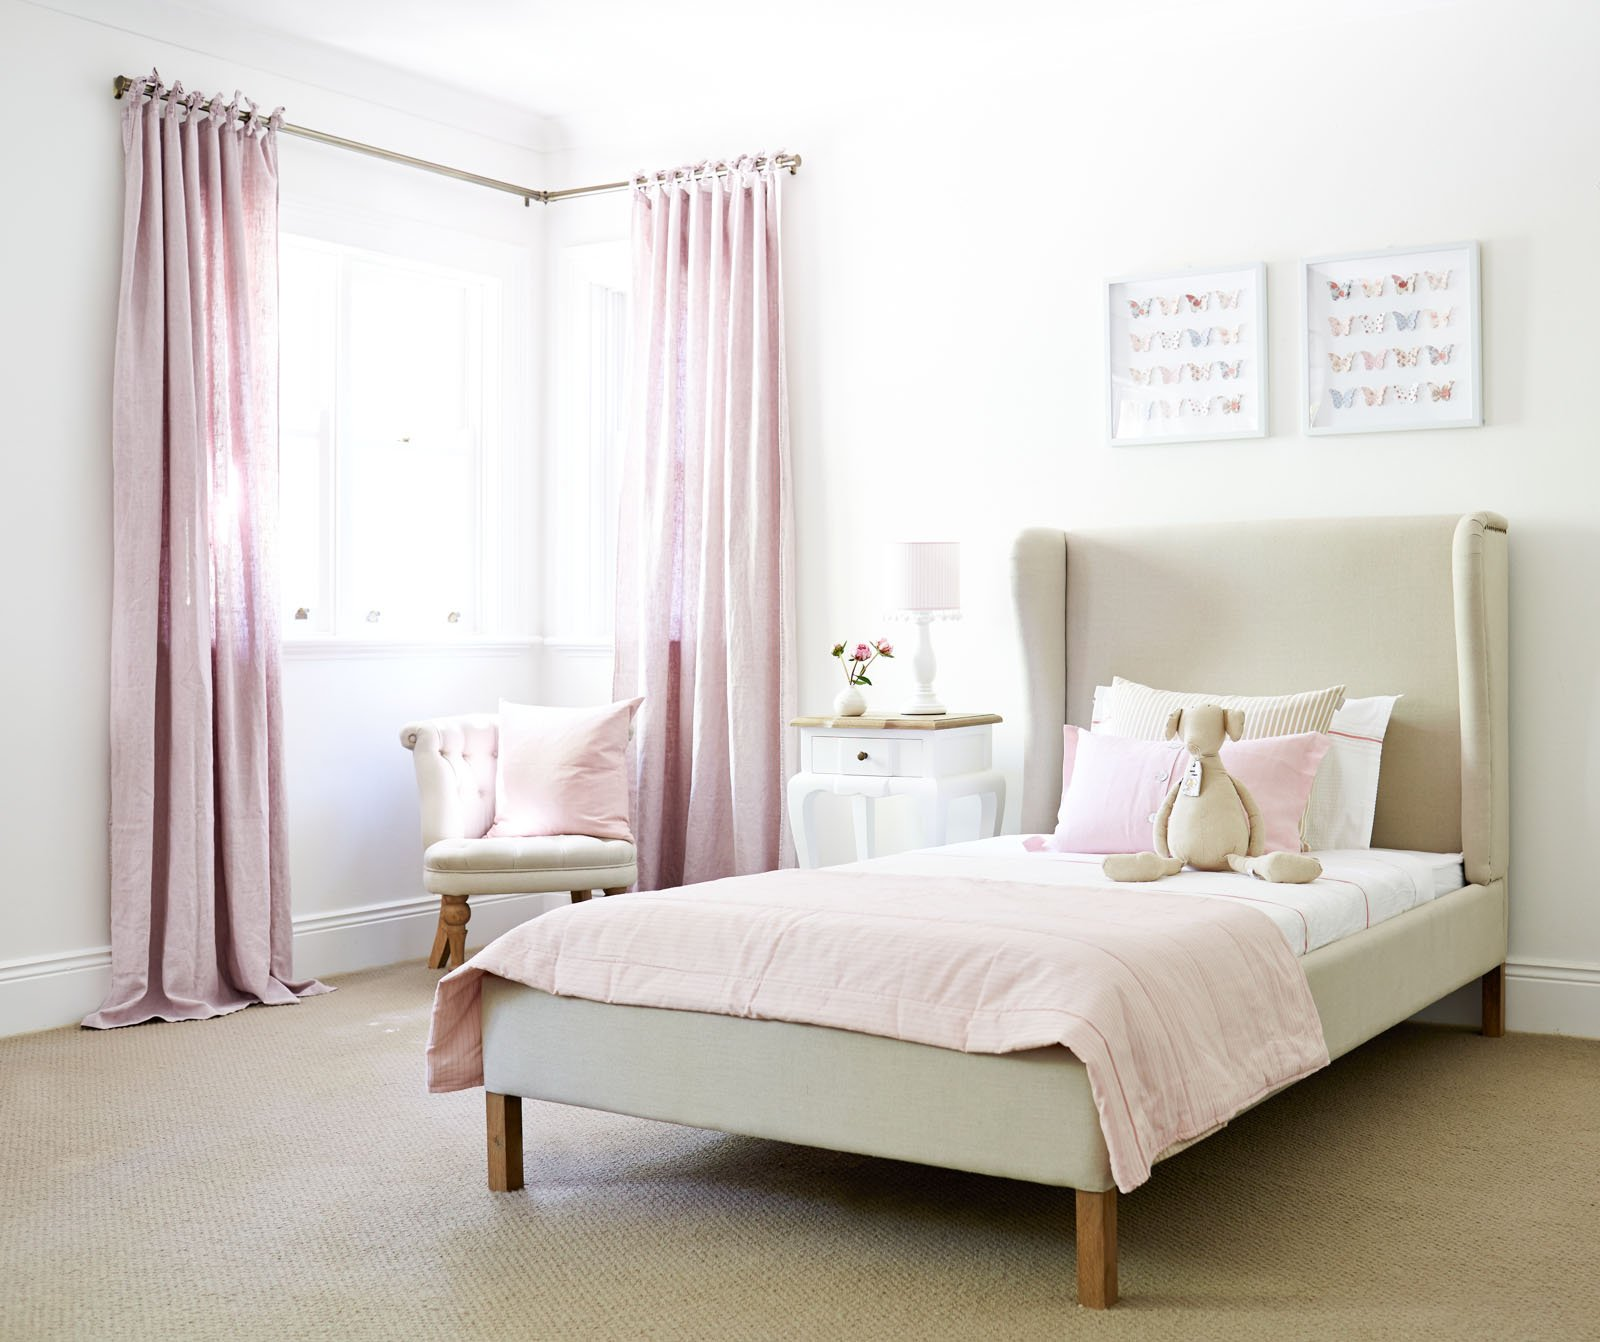 Modern French Provincial Bedroom Interview With The Beautiful Online Retailer Lavender Hill